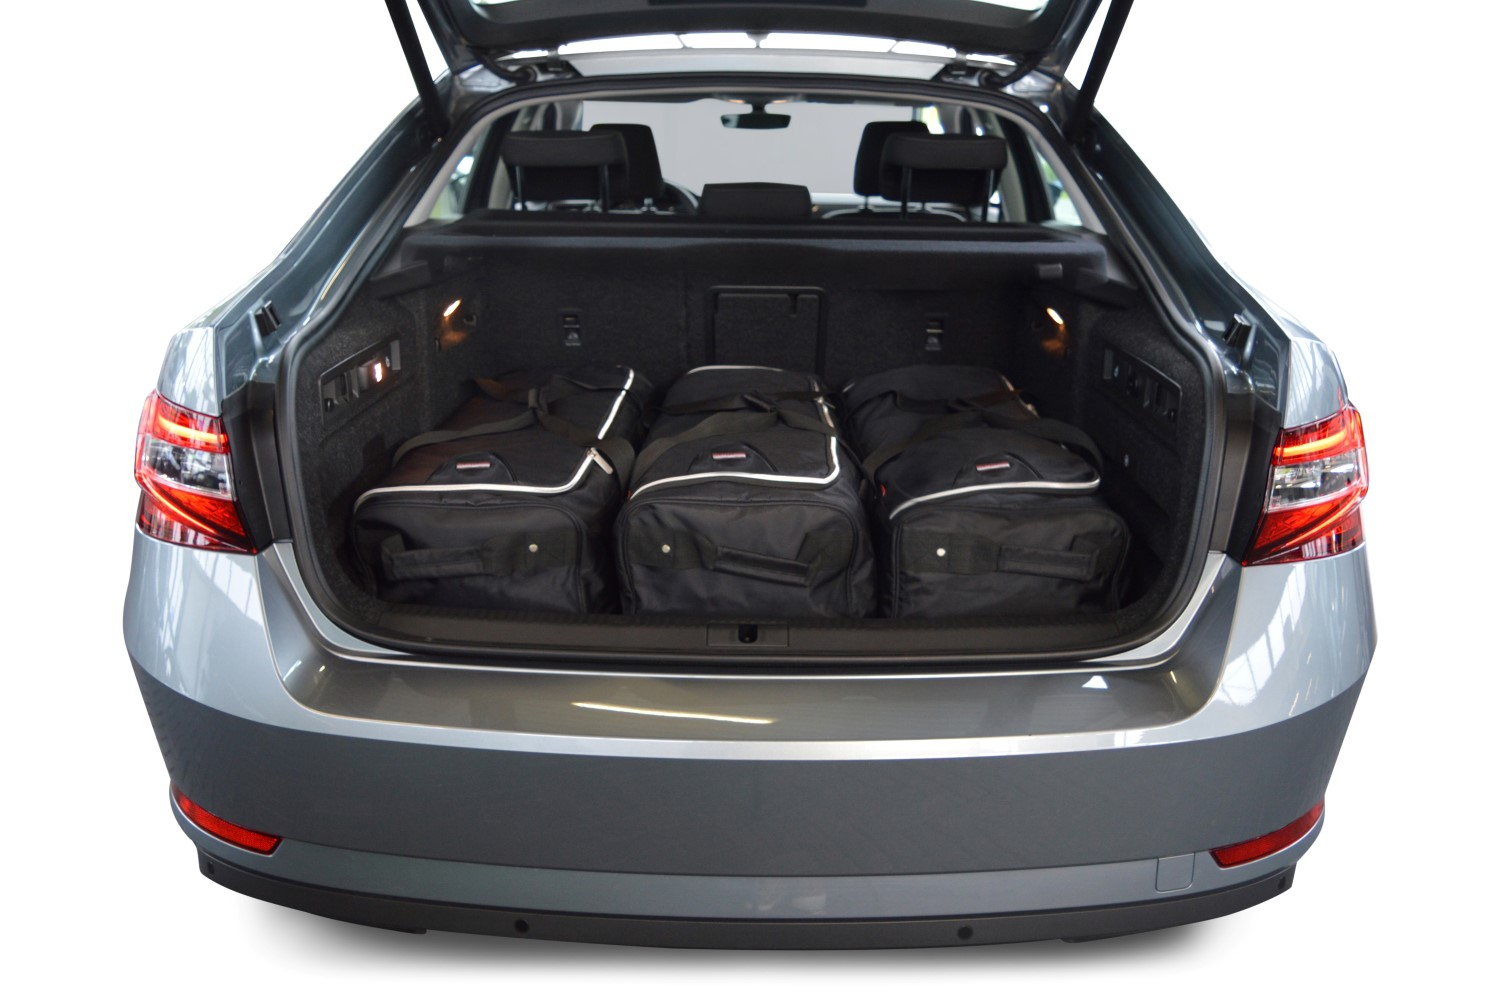 skoda superb iii 3v car travel bags car. Black Bedroom Furniture Sets. Home Design Ideas